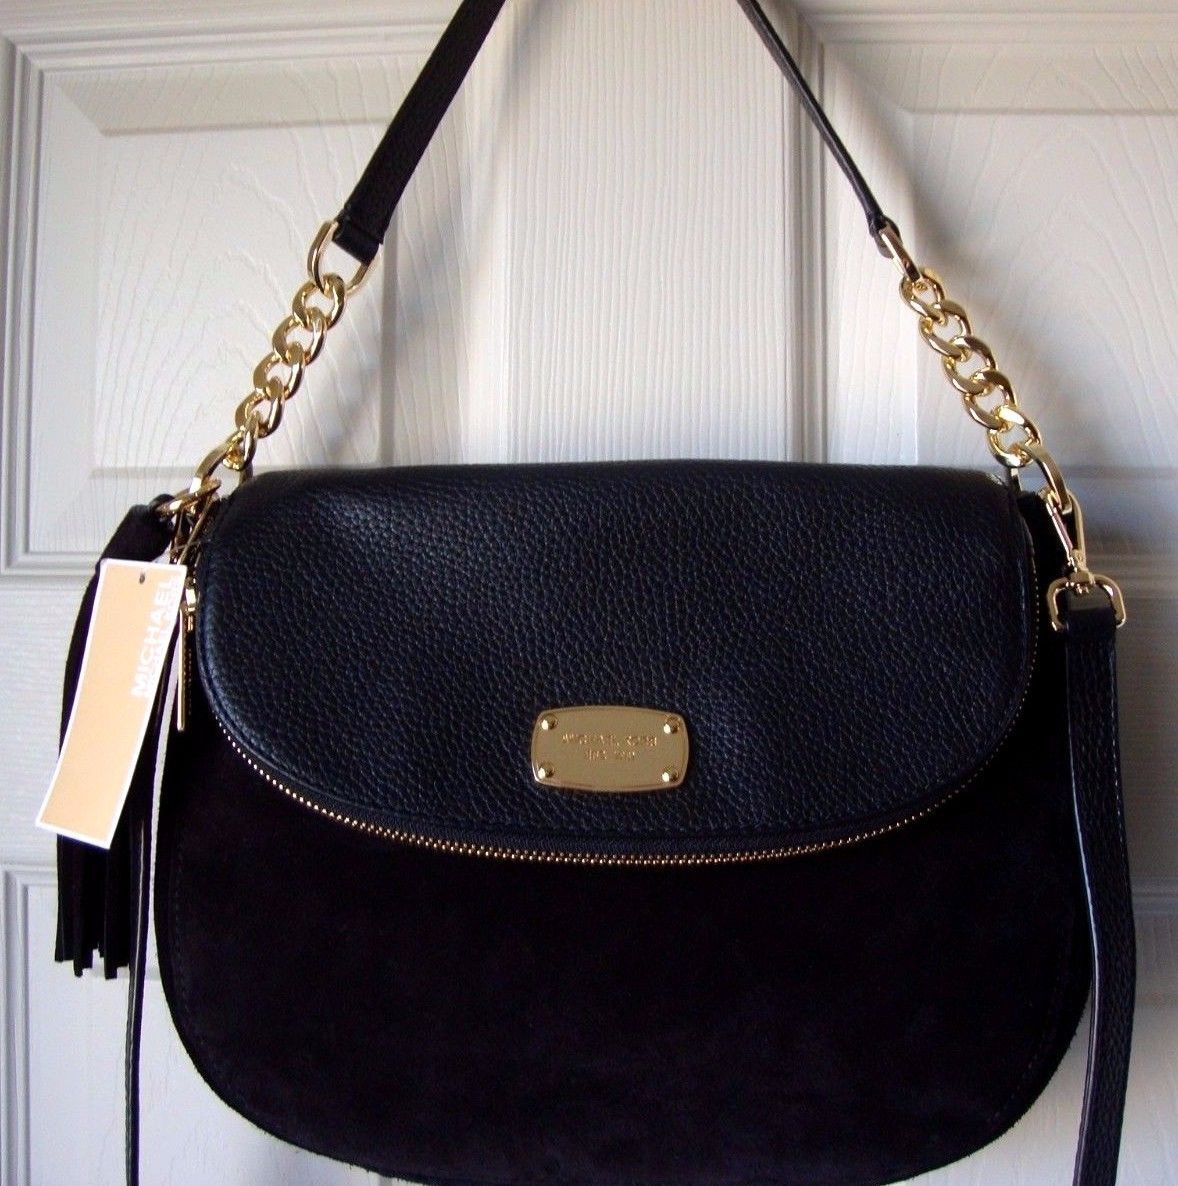 c1511f7ee917 S l1600. S l1600. Previous. New Michael Kors Women Bedford Tassel Medium  Convertible Shoulder Bag Black